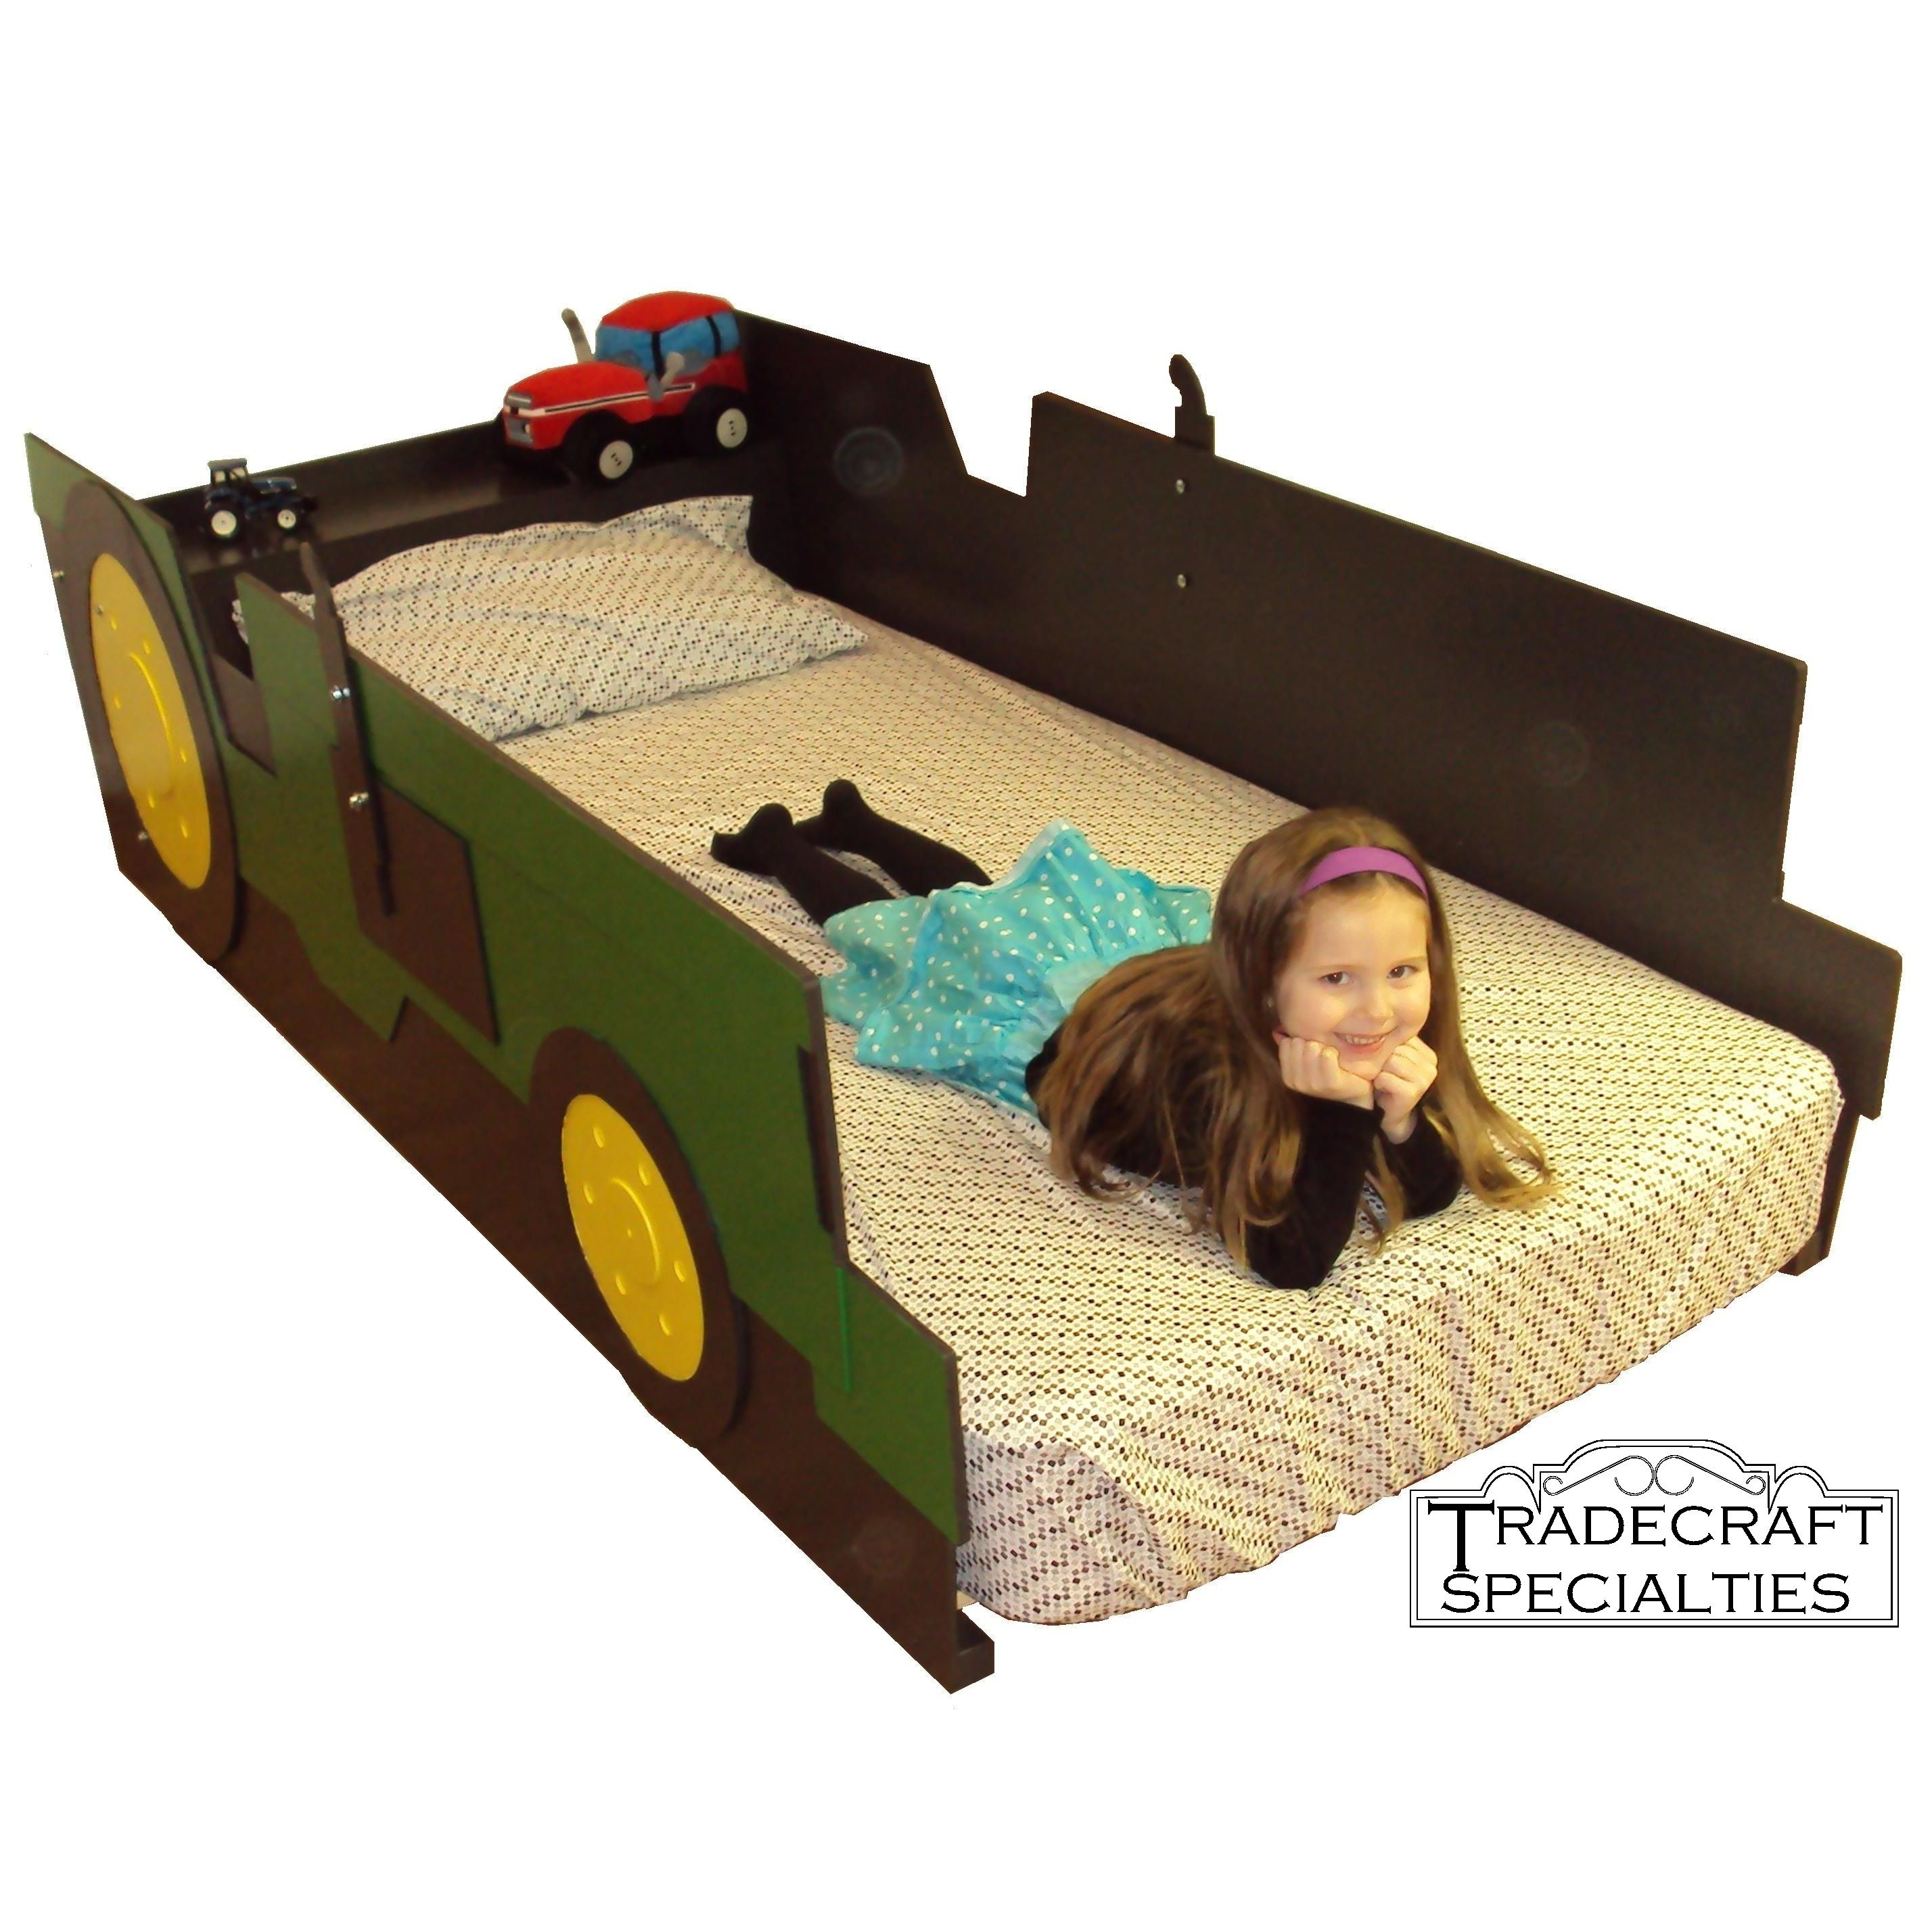 Buy a handmade tractor twin kids bed frame handcrafted for Little girl twin bed frame